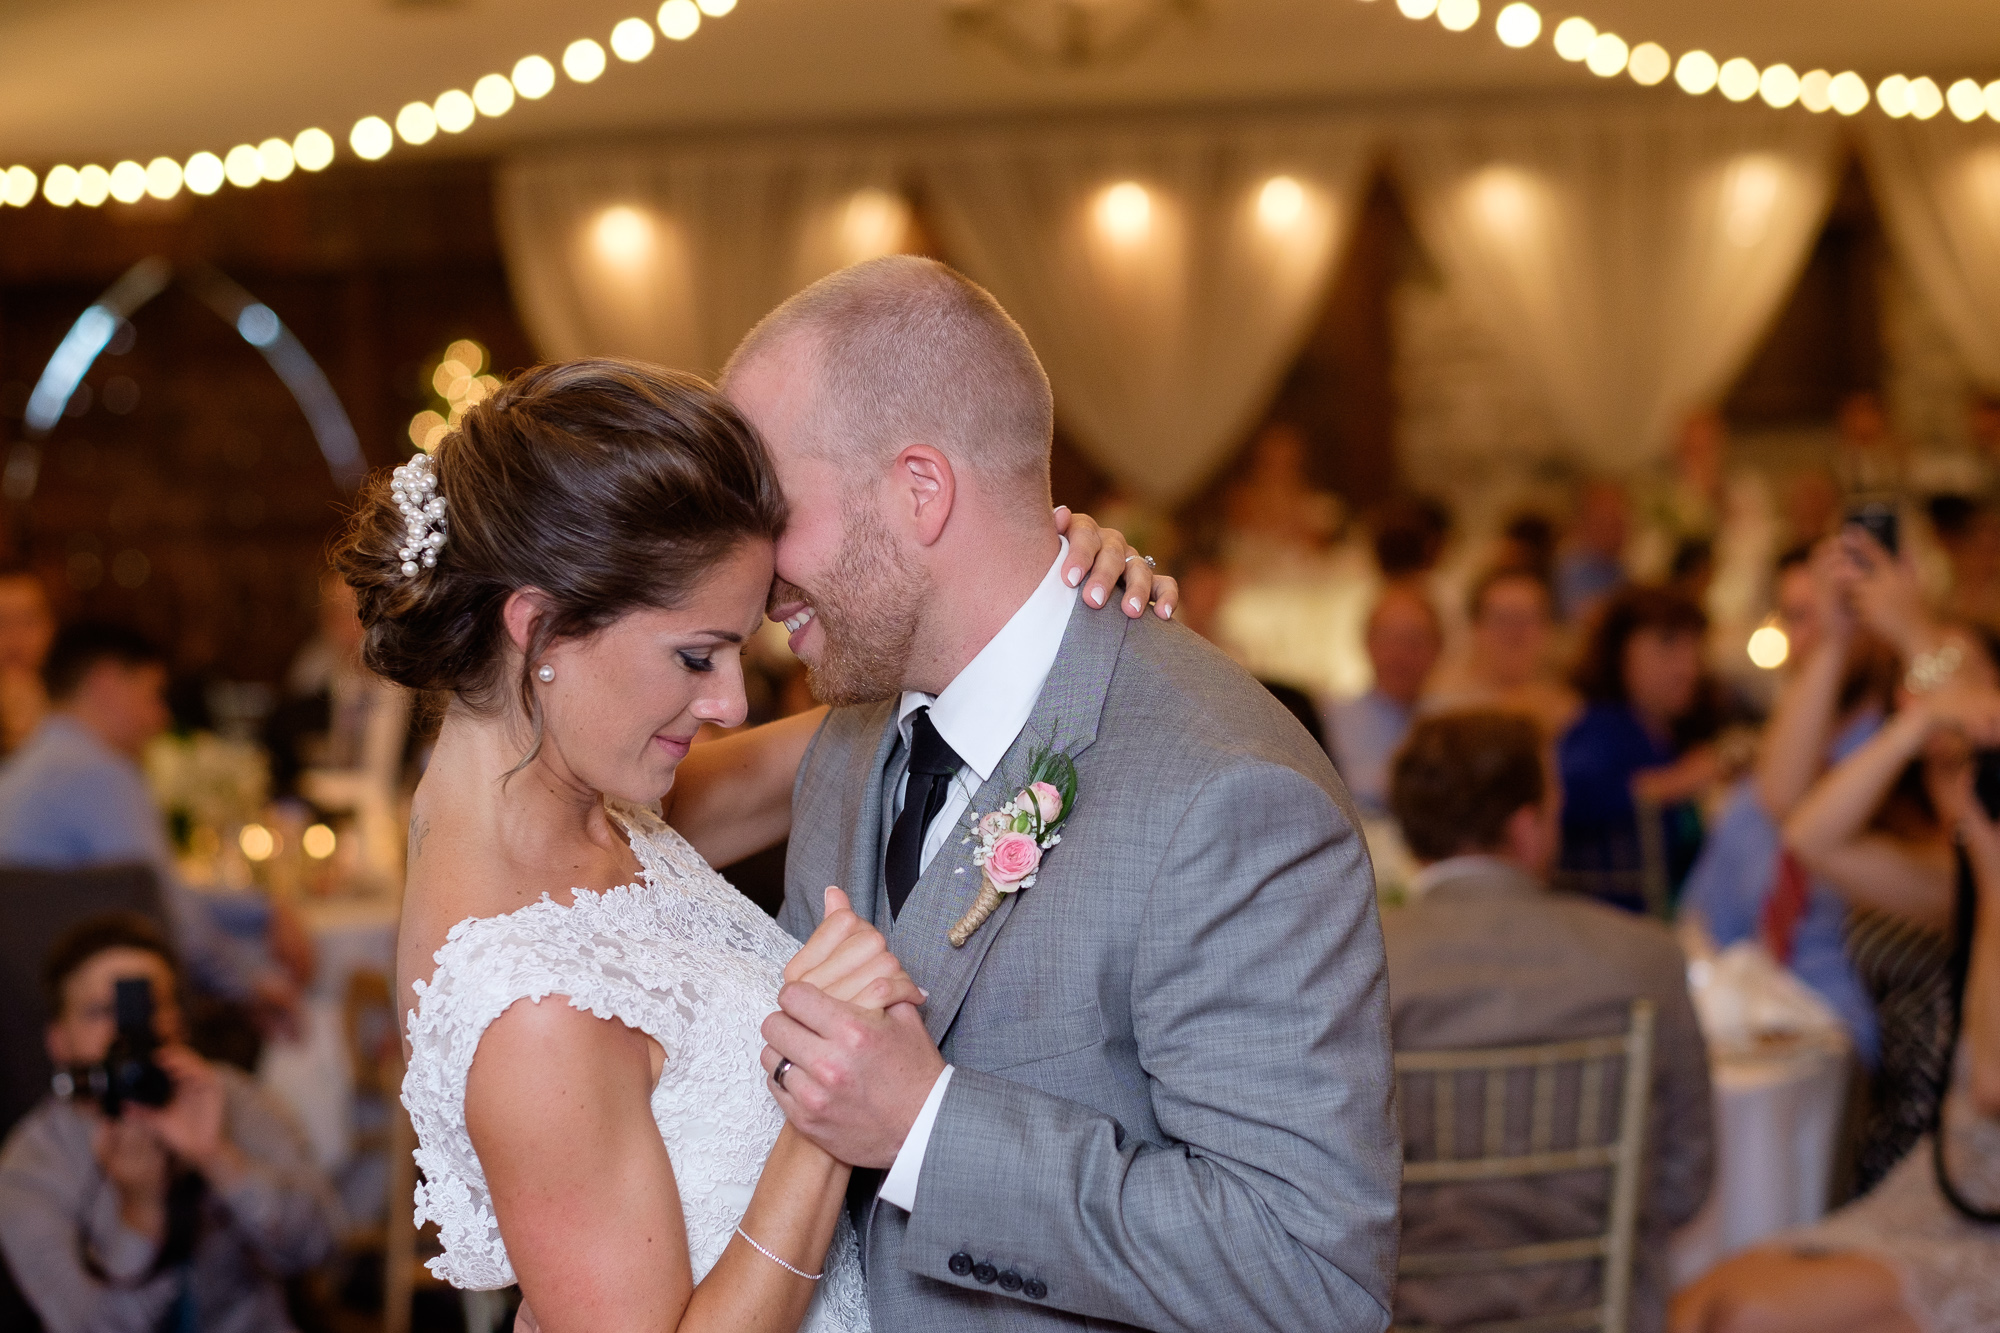 A photograph of the first dance during the reception from Rebecca + Jeff's wedding at the Hessenland Inn.